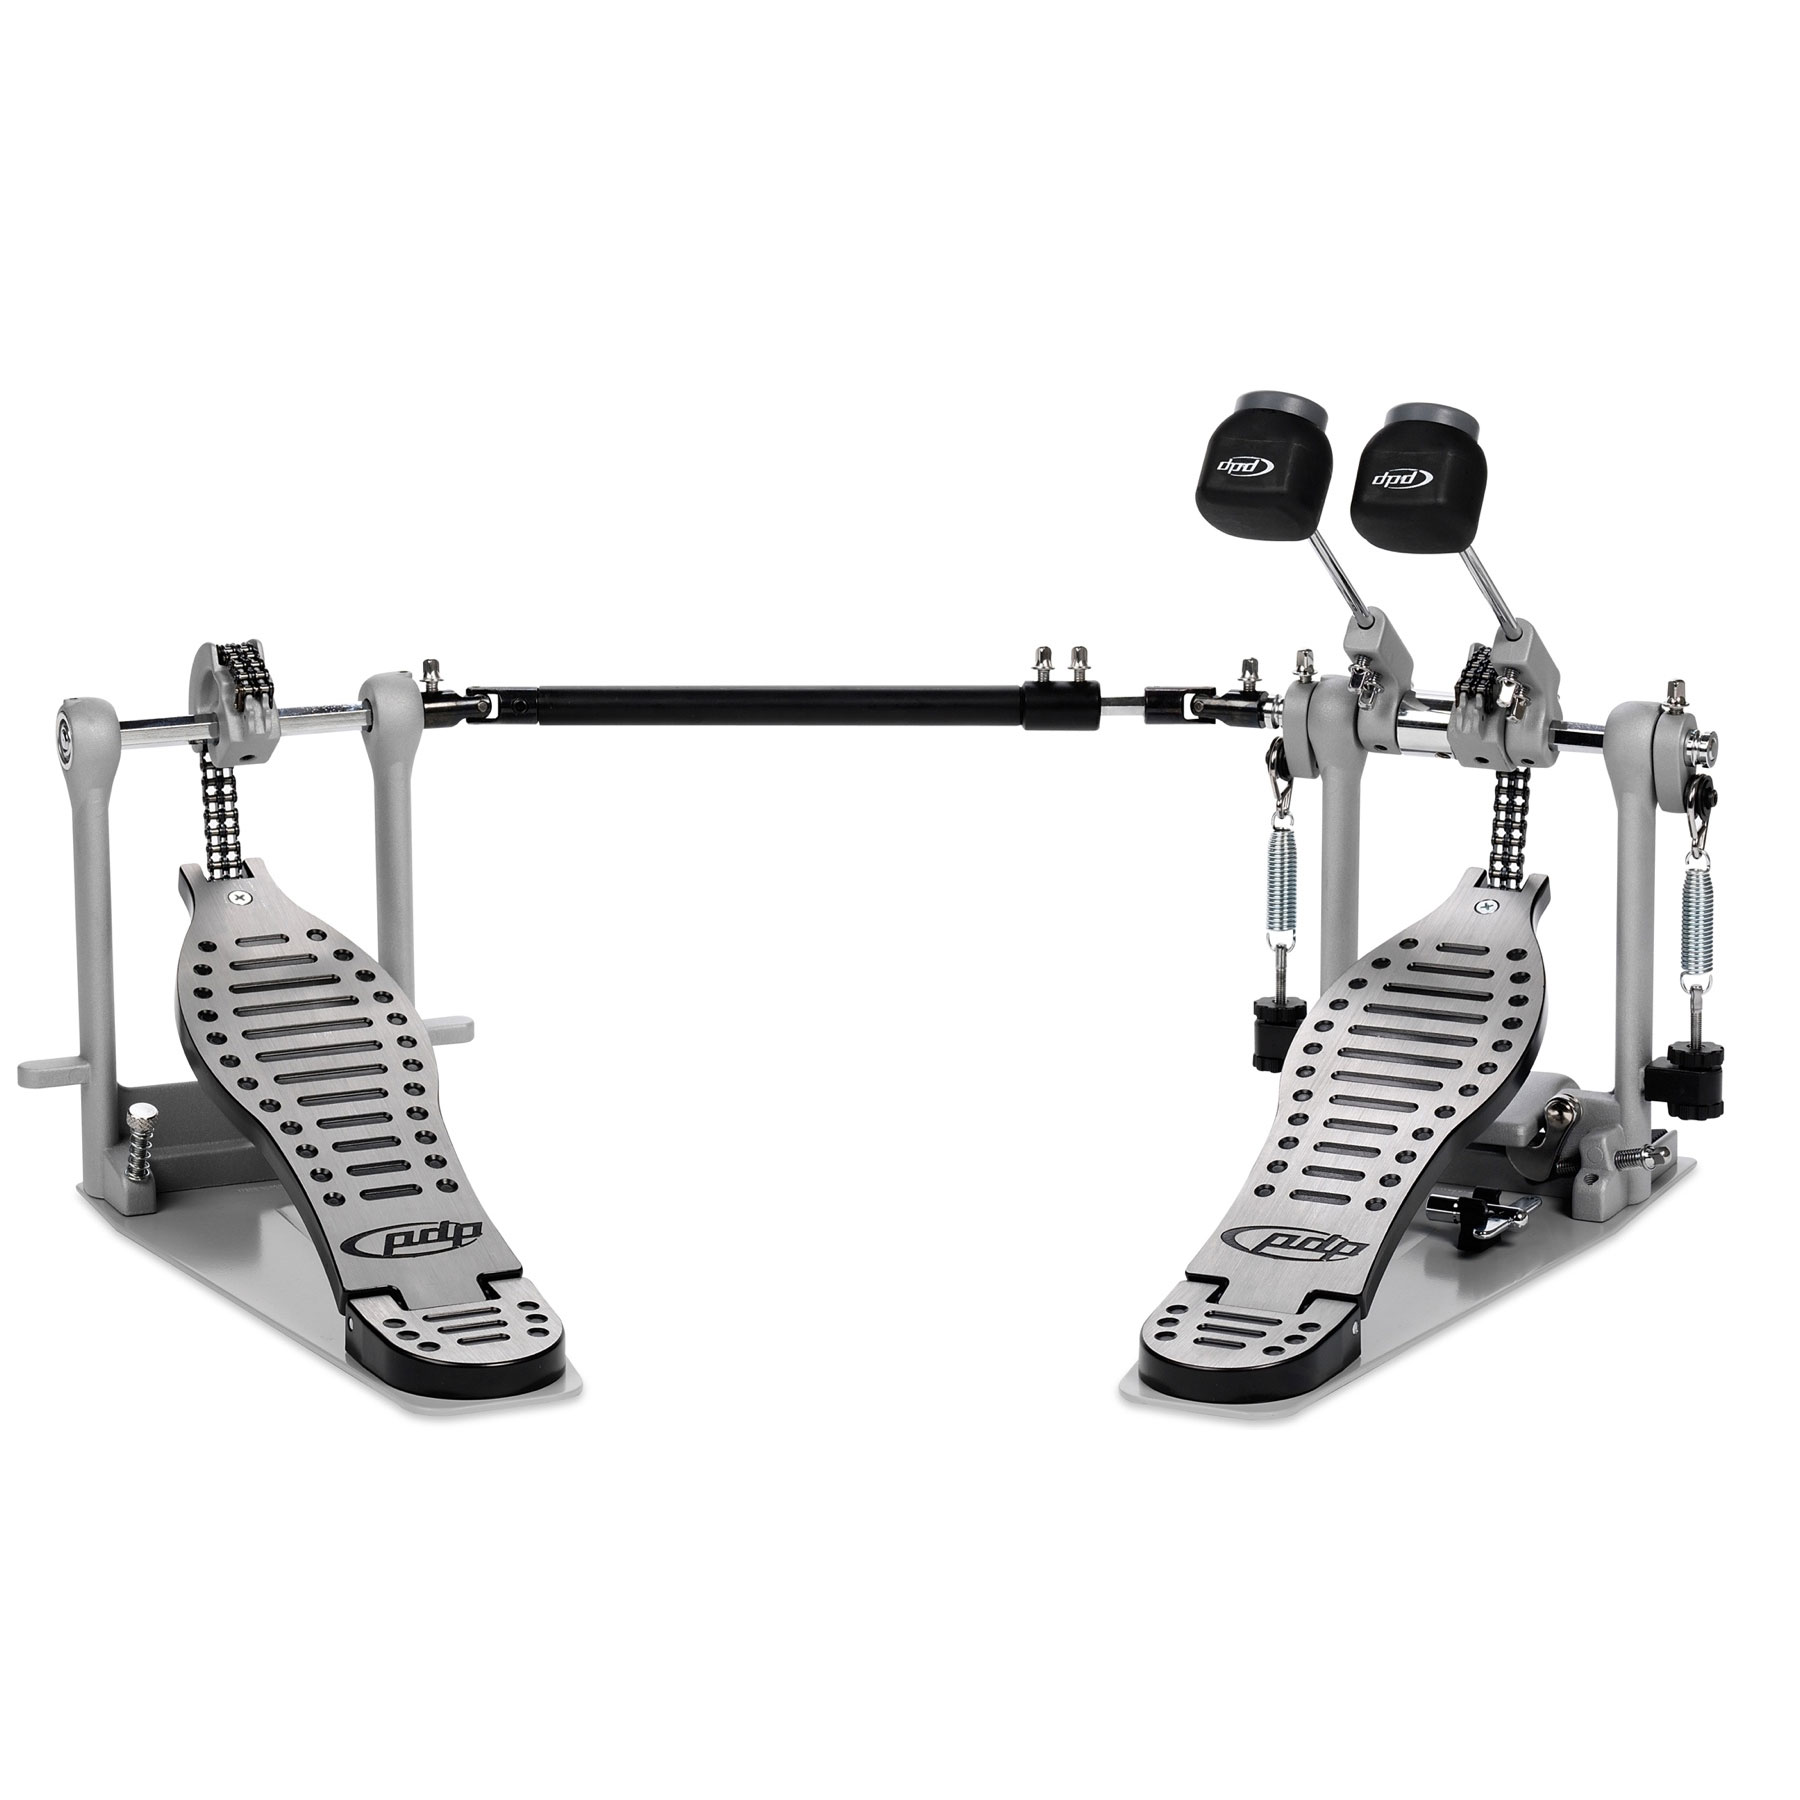 DW 500 Series Double Bass Drum Pedal